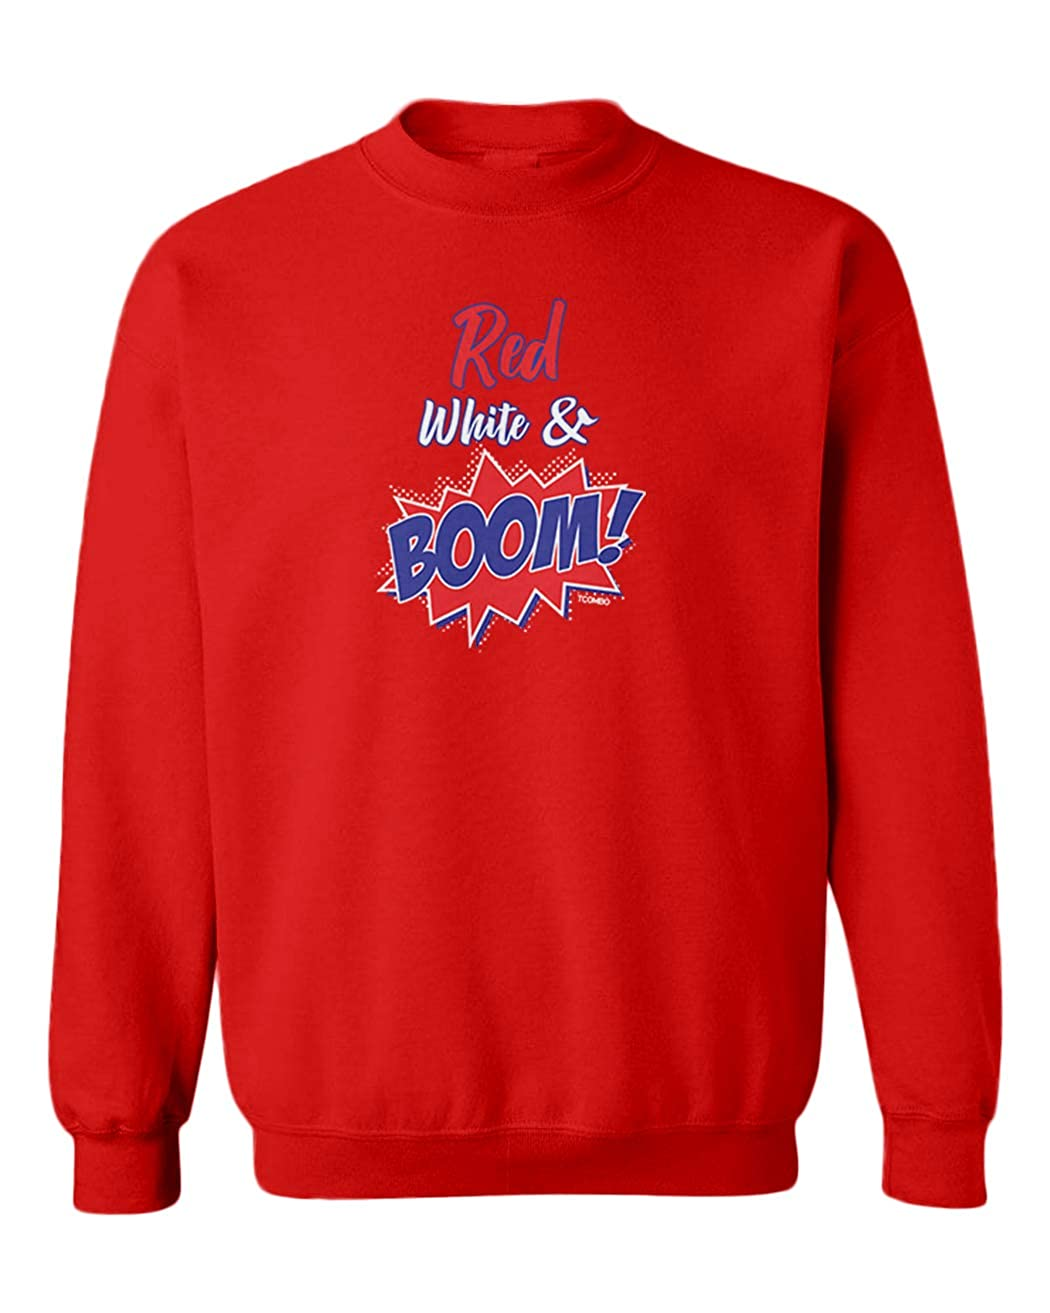 Tcombo Red White and Boom USA Fireworks Youth Fleece Crewneck Sweater